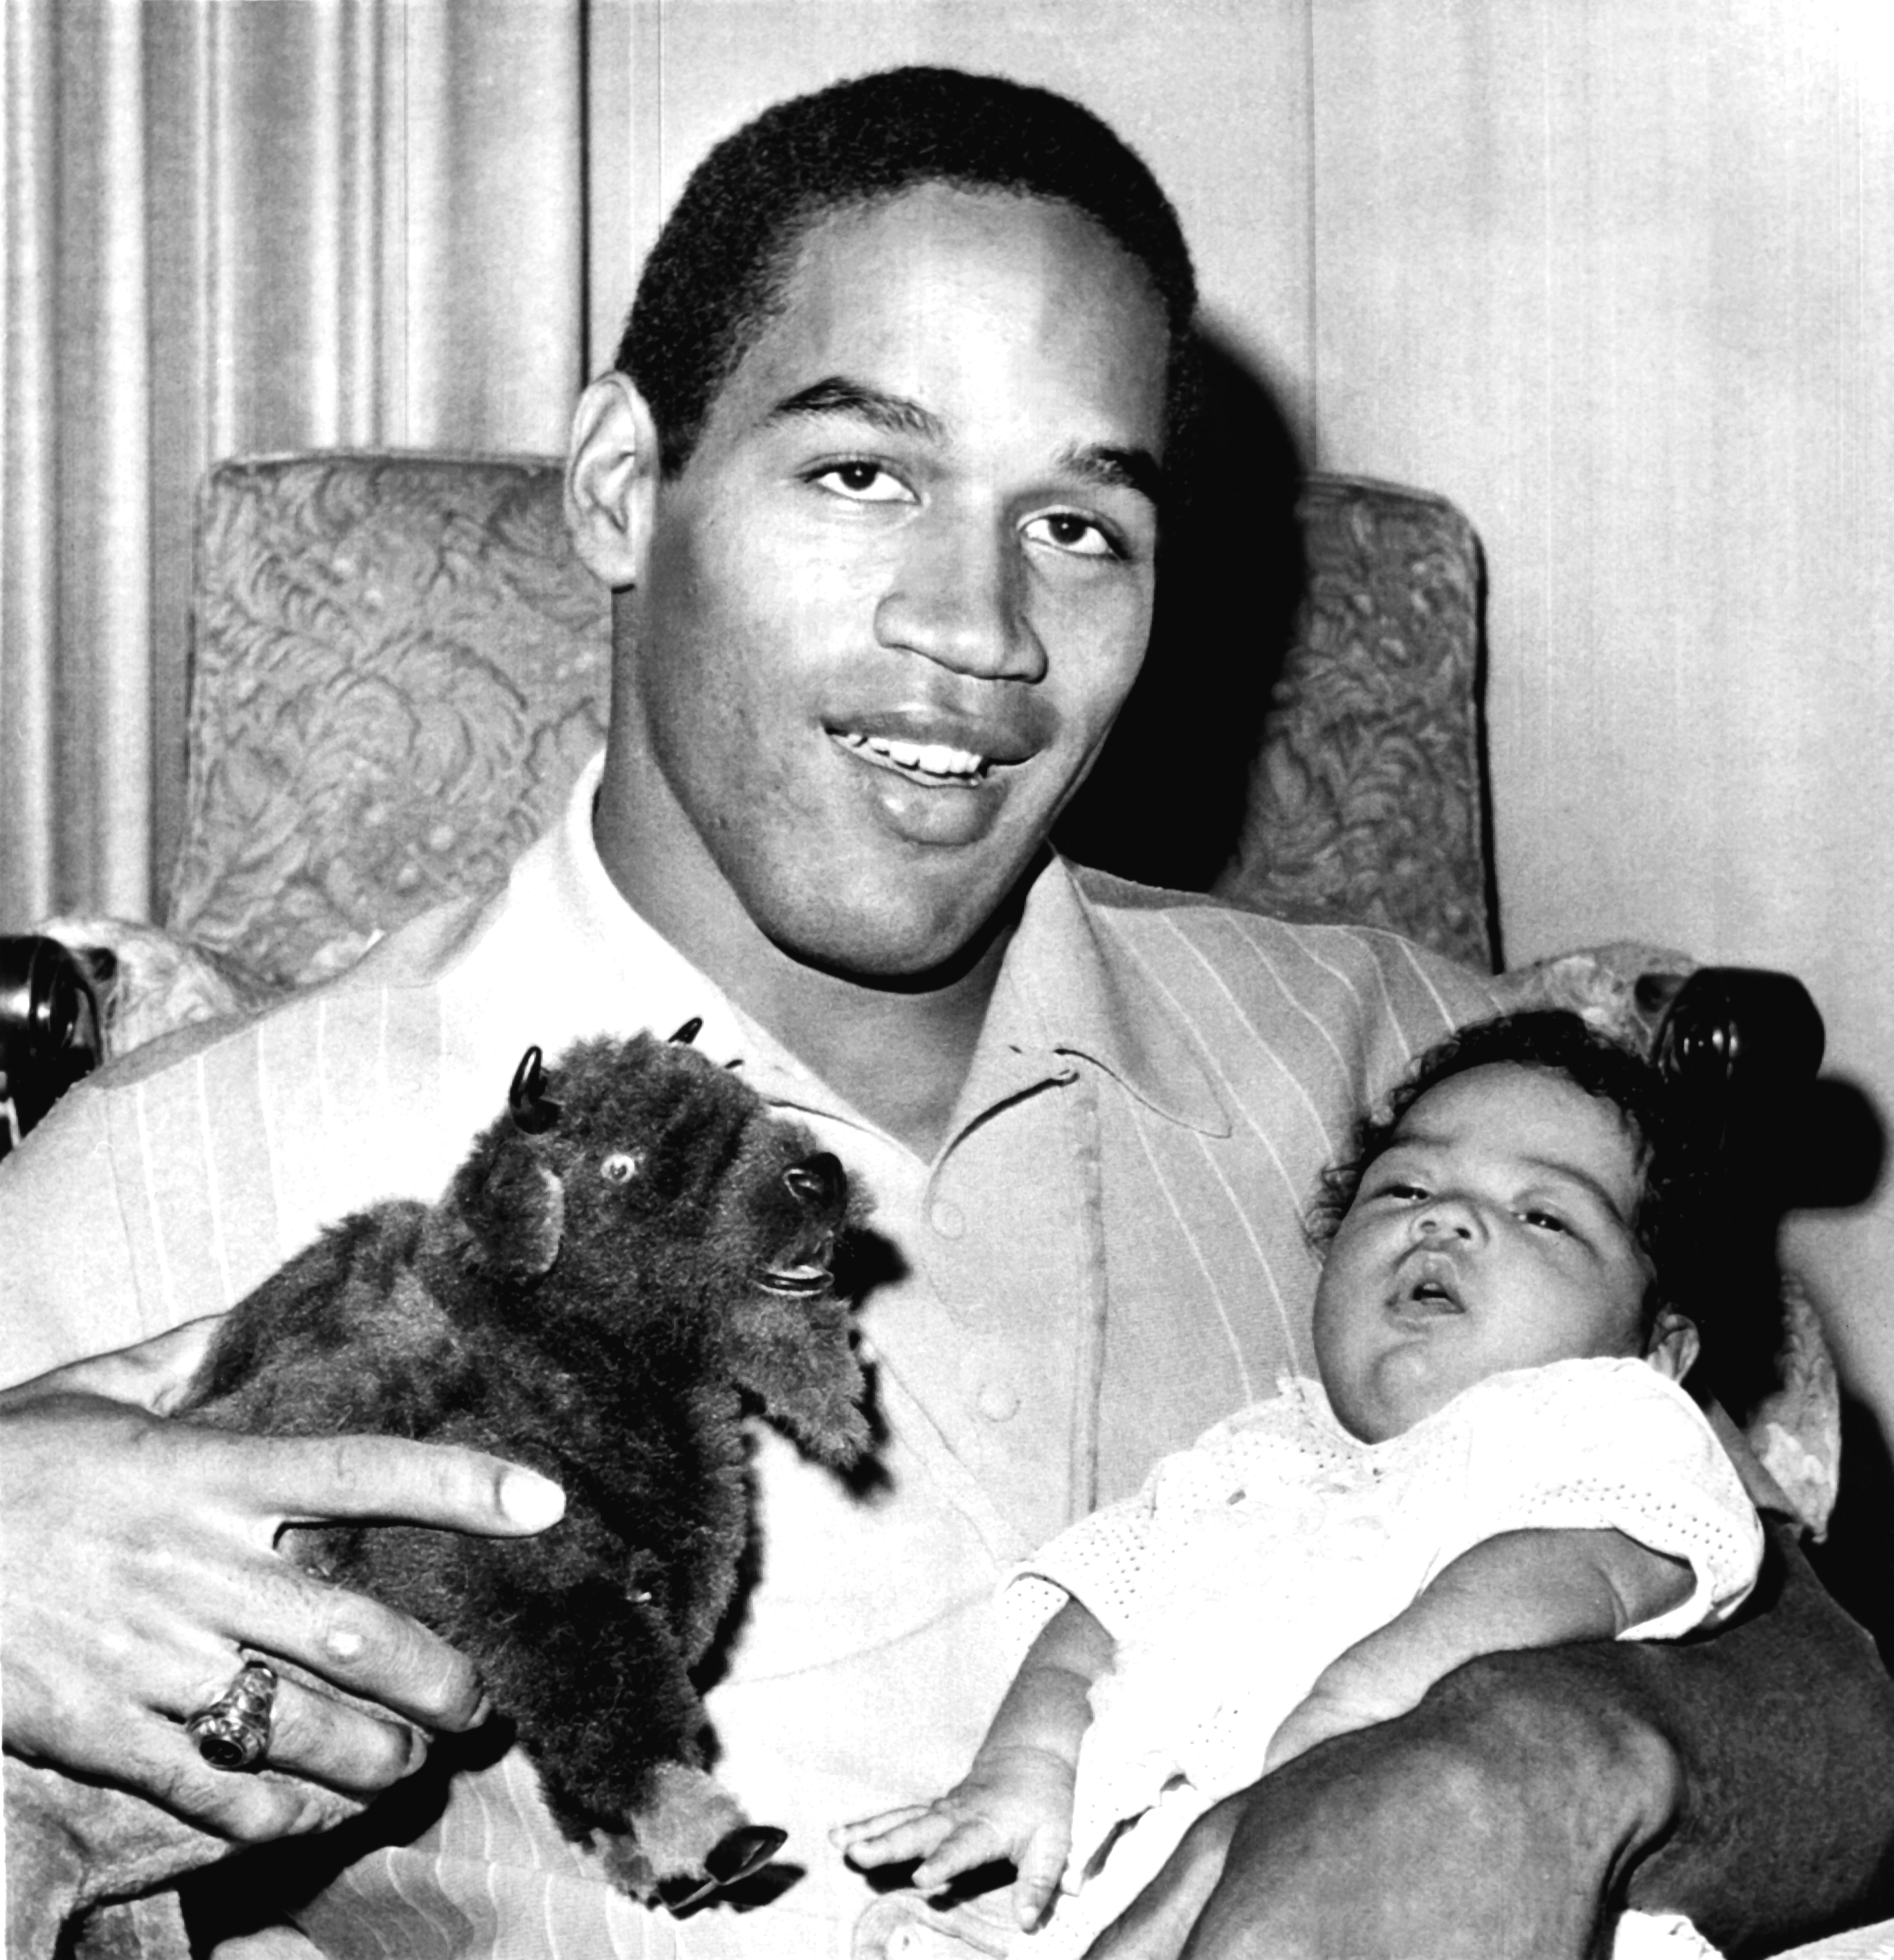 O.J. Simpson holding his daughter